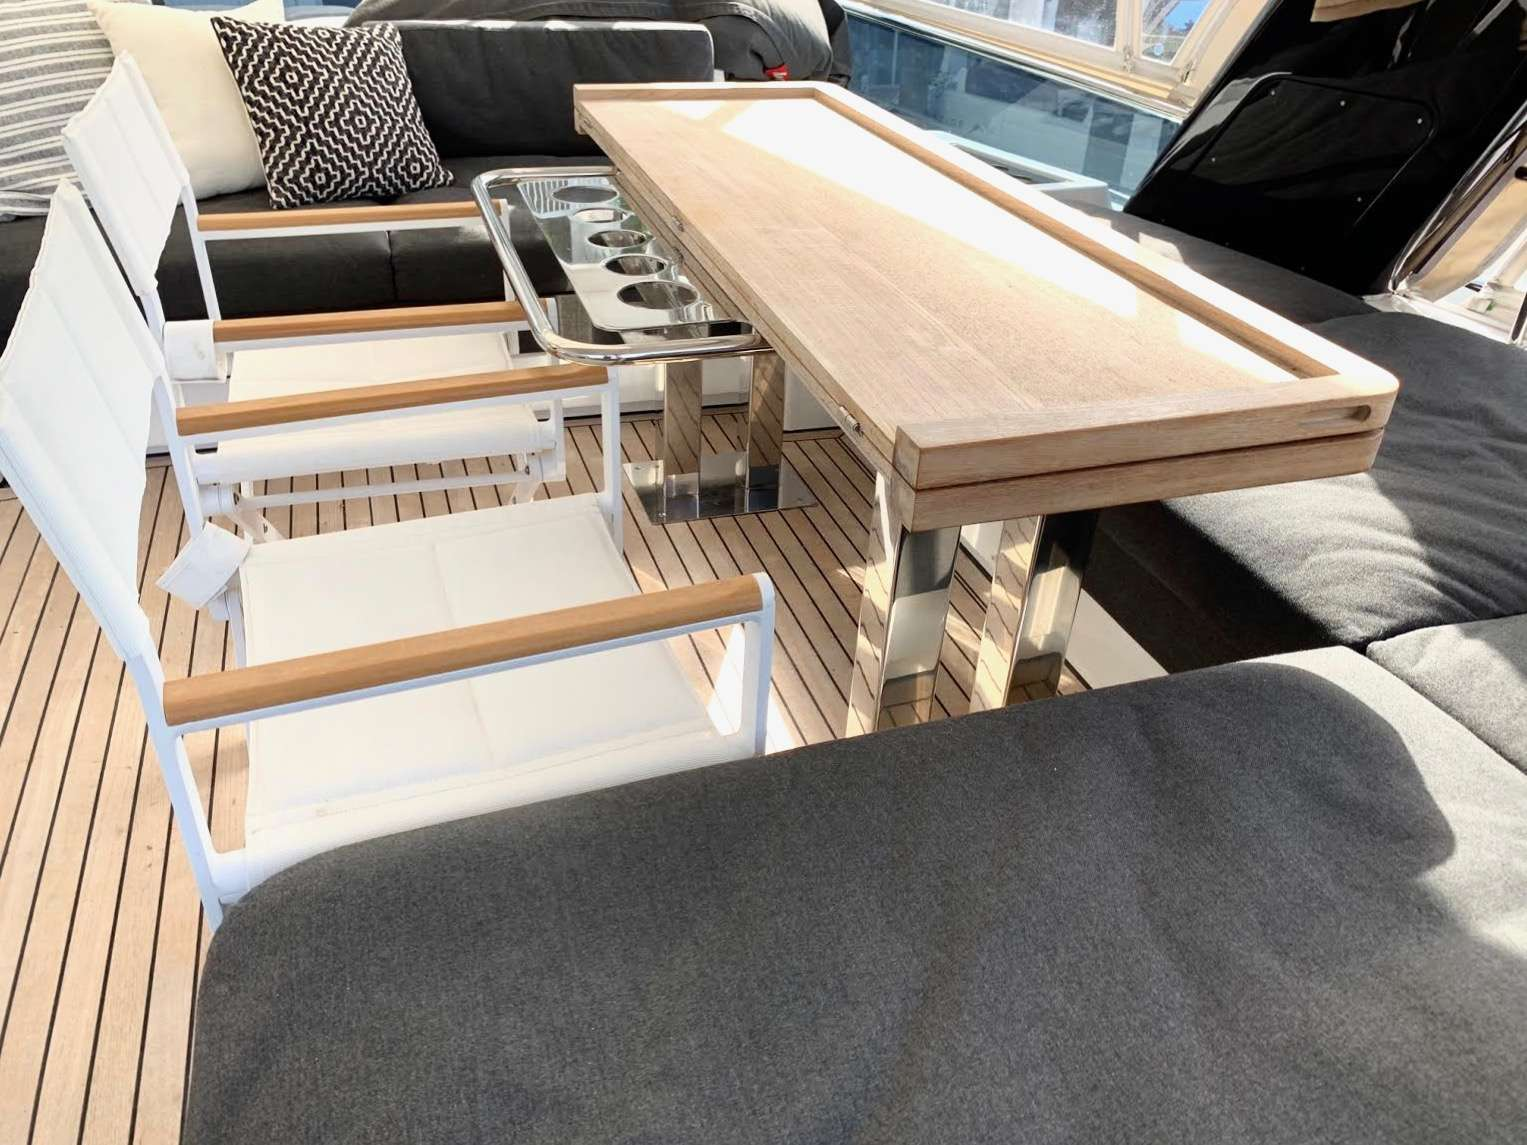 Two cozy trampolines and lounge cushions at the bow